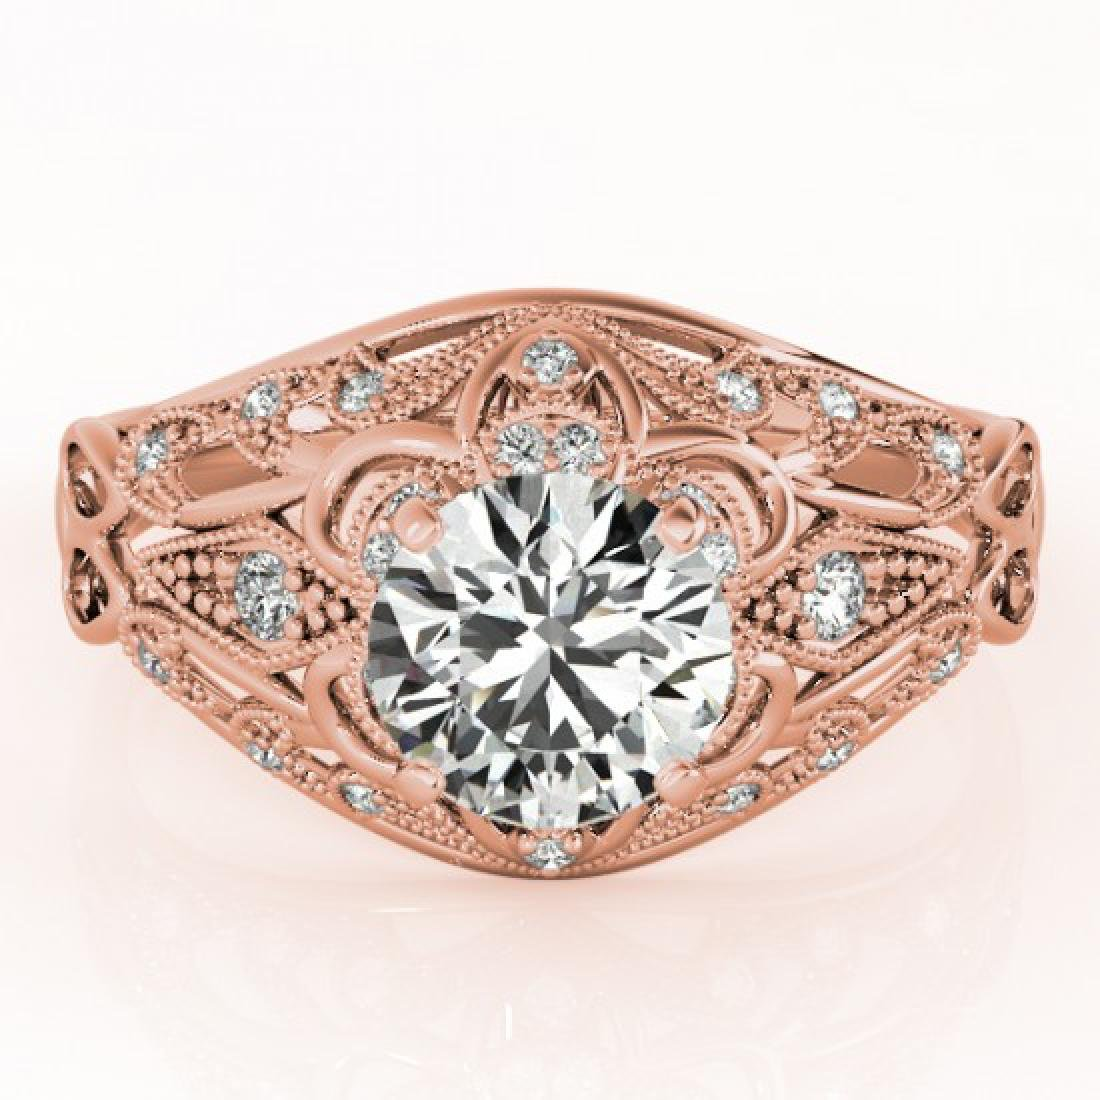 0.87 CTW Certified VS/SI Diamond Solitaire Antique Ring